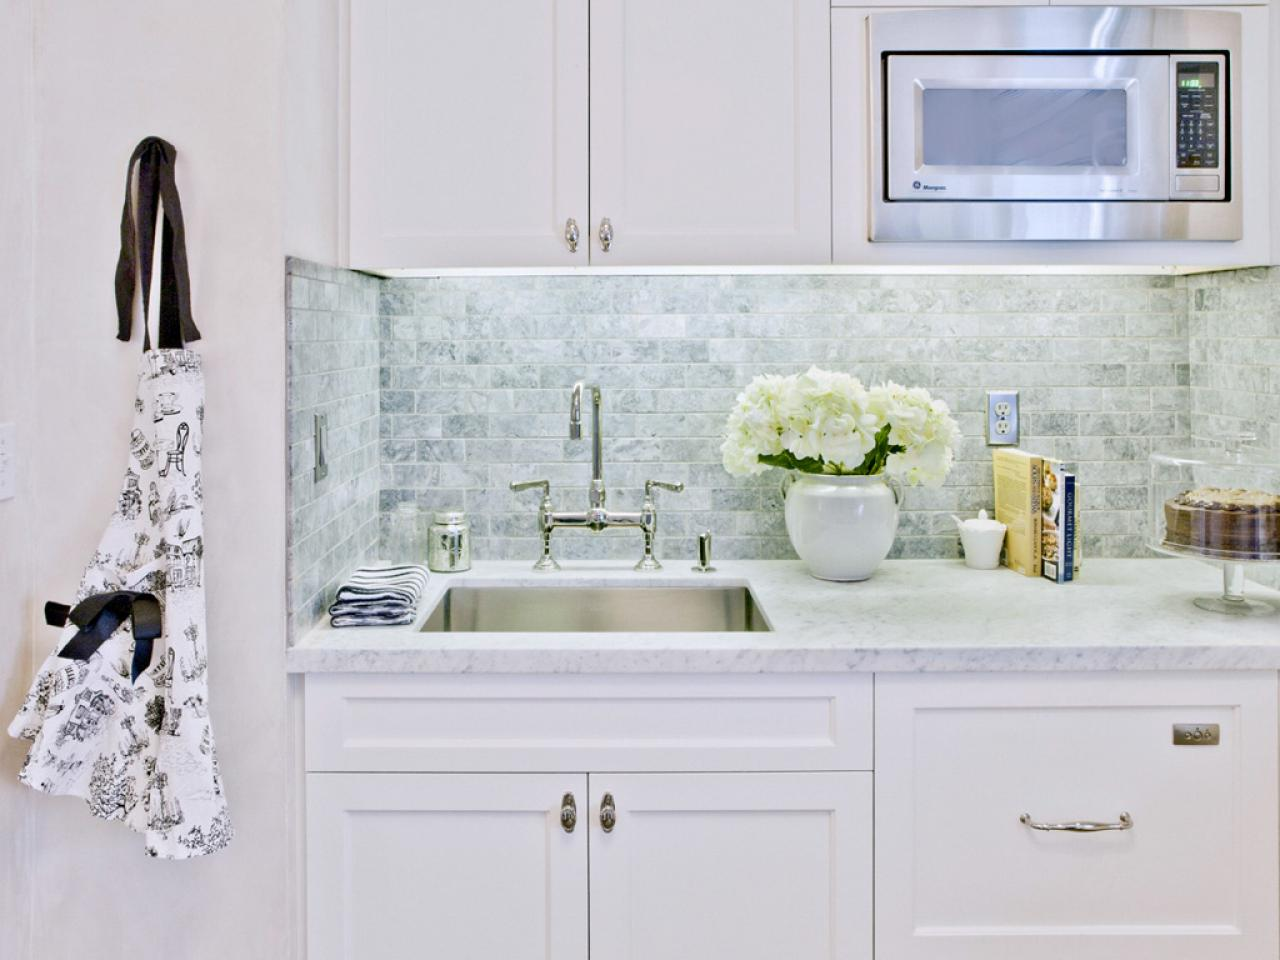 Subway tile backsplashes pictures ideas tips from hgtv hgtv subway tile backsplashes dailygadgetfo Images